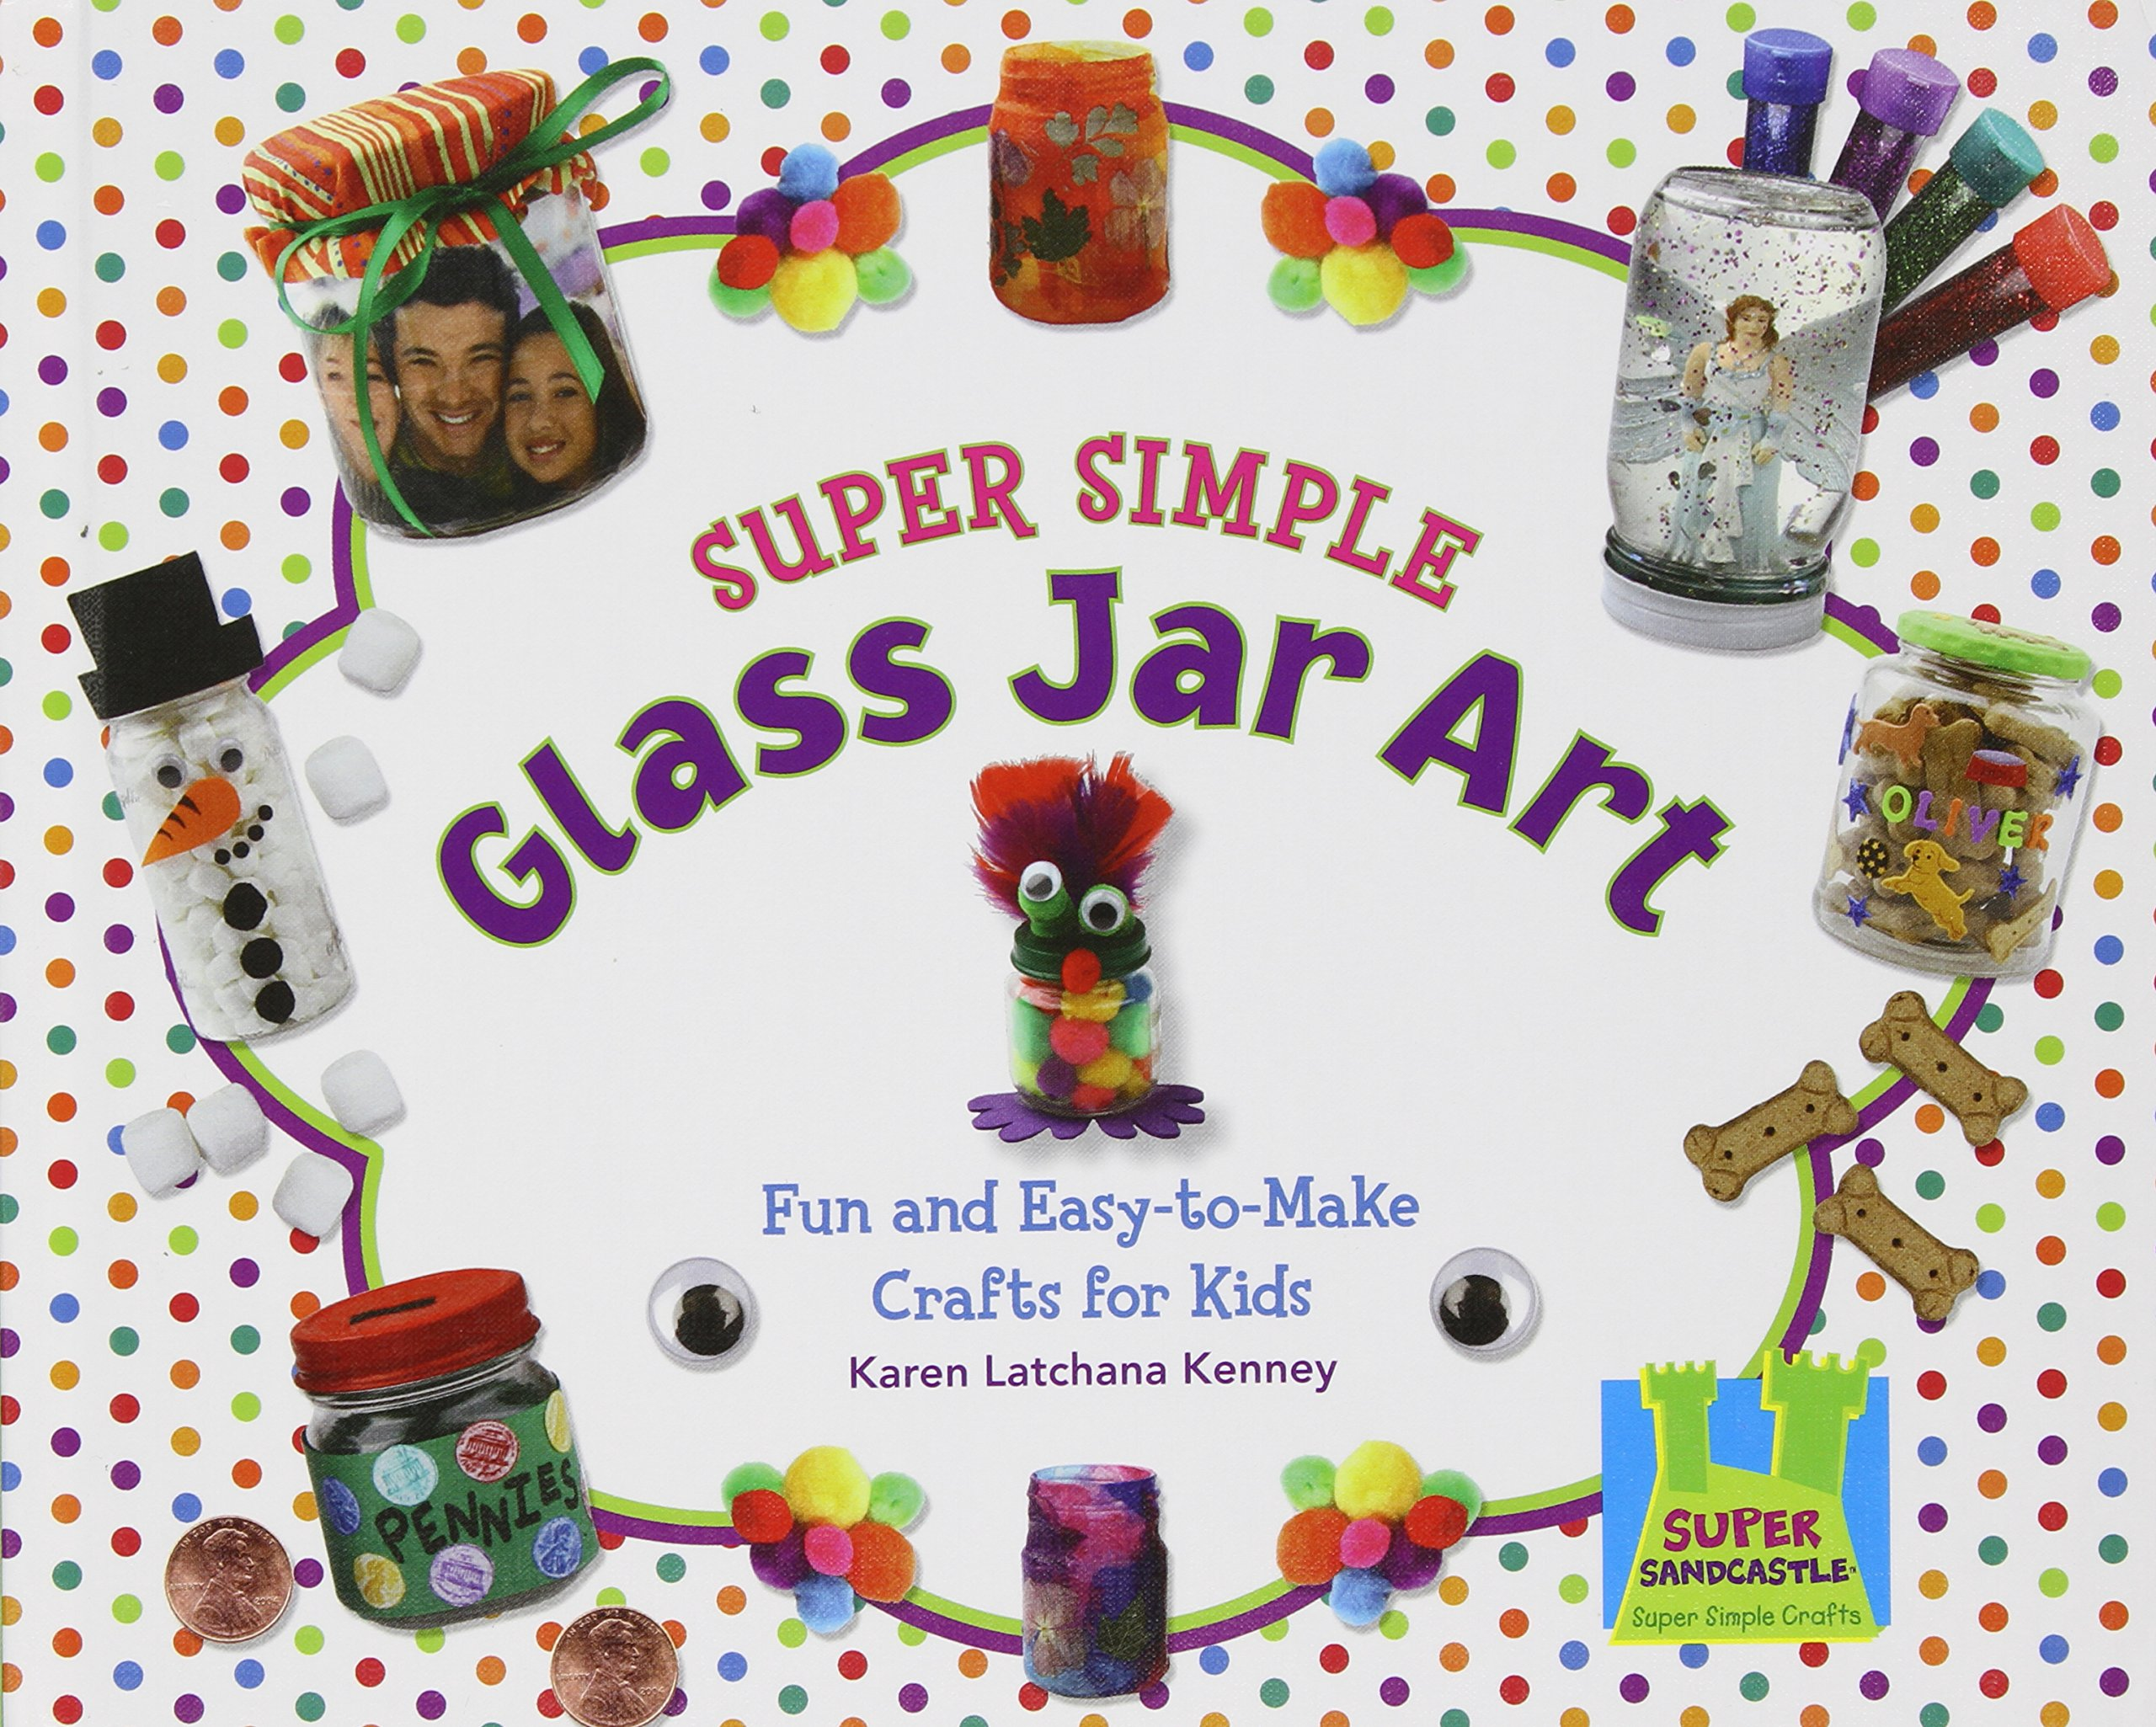 Super Simple Glass Jar Art: Fun and Easy-to-Make Crafts for Kids (Super Simple Crafts) ebook